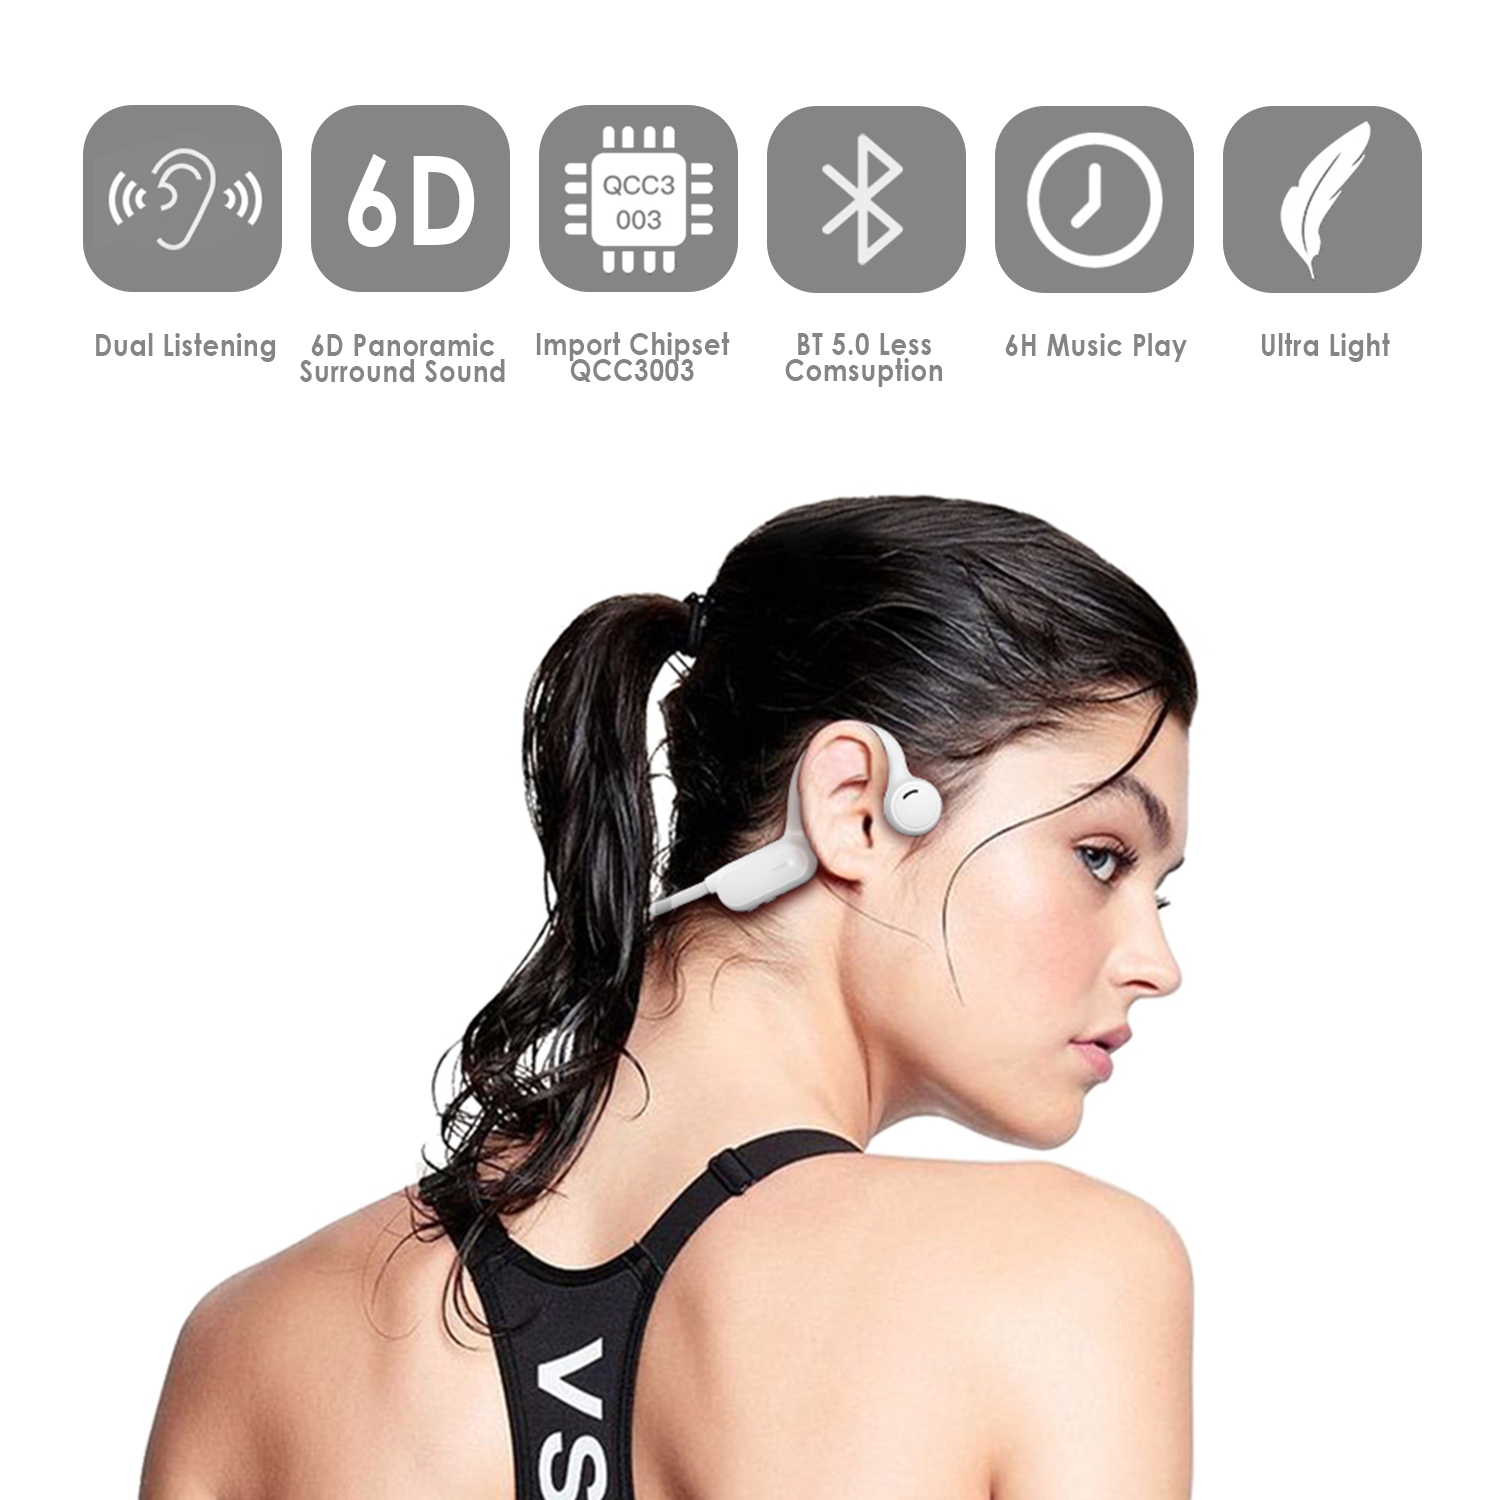 Bluetooth 5.0 <font><b>Wireless</b></font> Open <font><b>Ear</b></font> Headset Bone Conduction Headphones Neck Hook Music Player <font><b>Earphone</b></font> for Outdoor <font><b>Sports</b></font> Running image